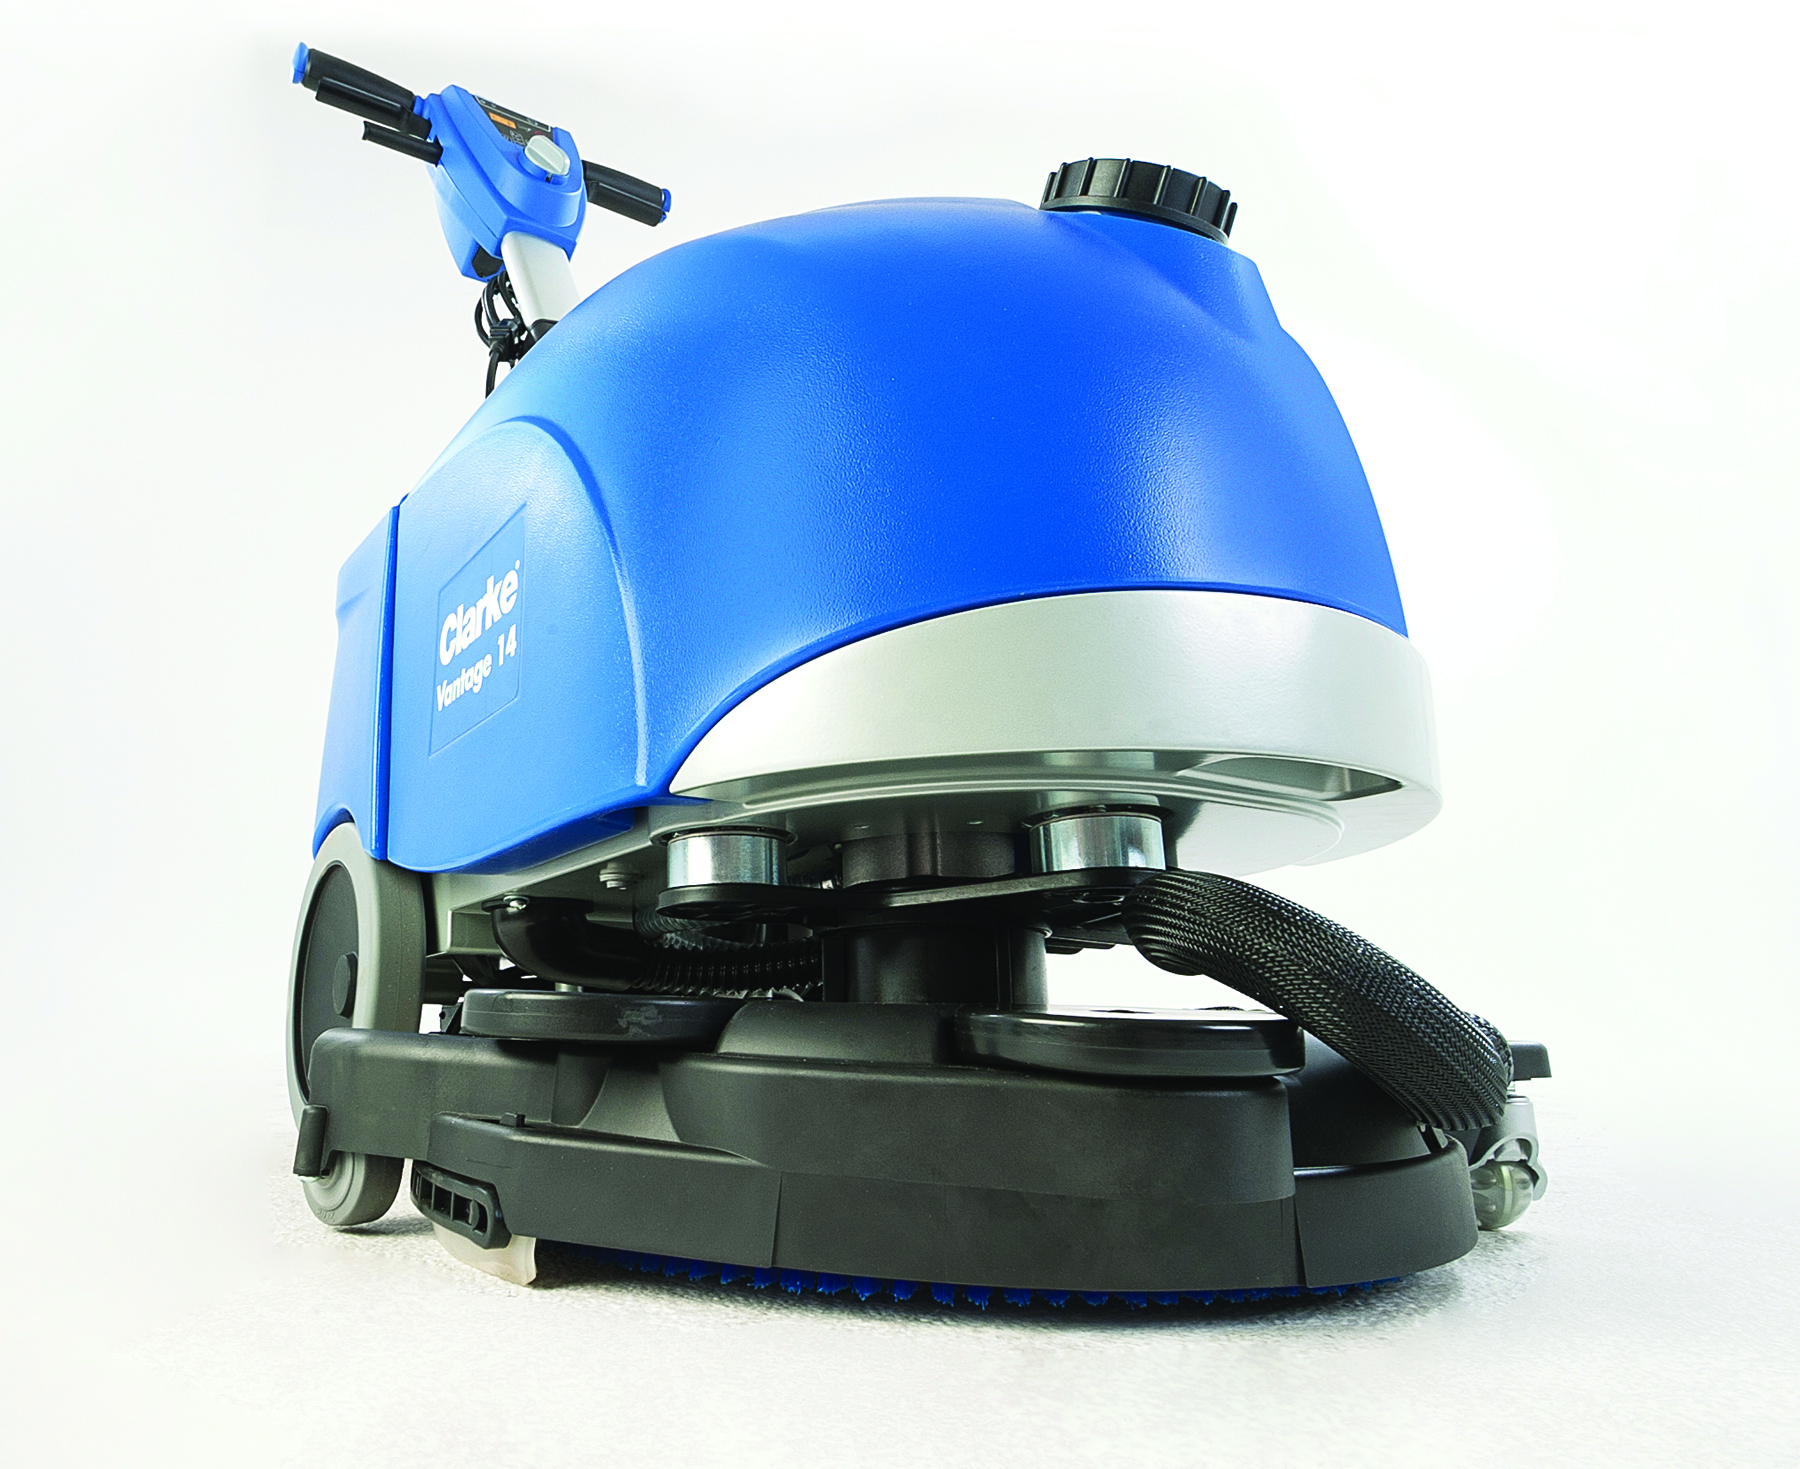 Ideas With Hardwood Depot Grout Cleaner Machine Best Home Design And